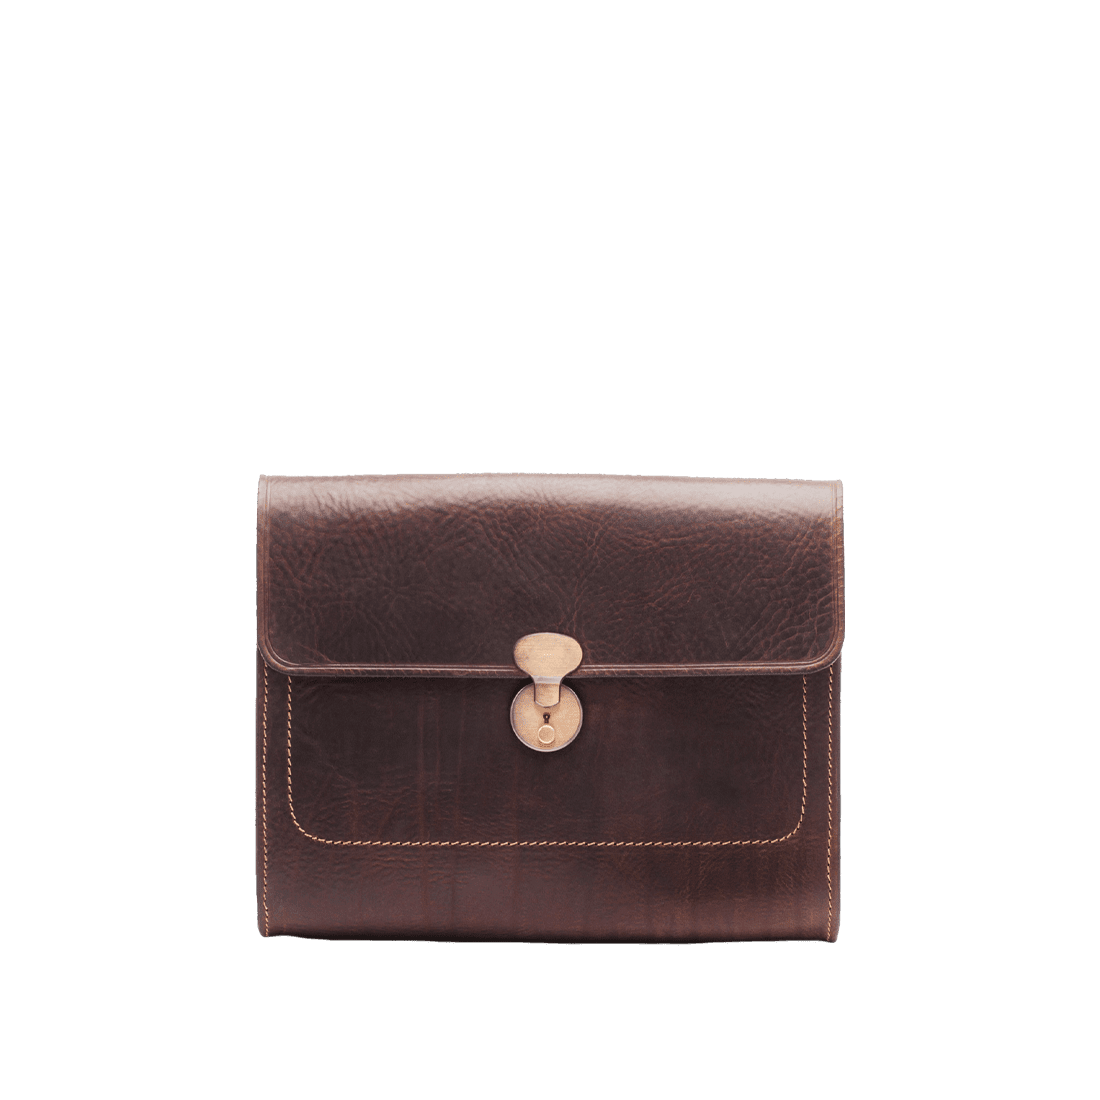 MacKenzie Leather document case